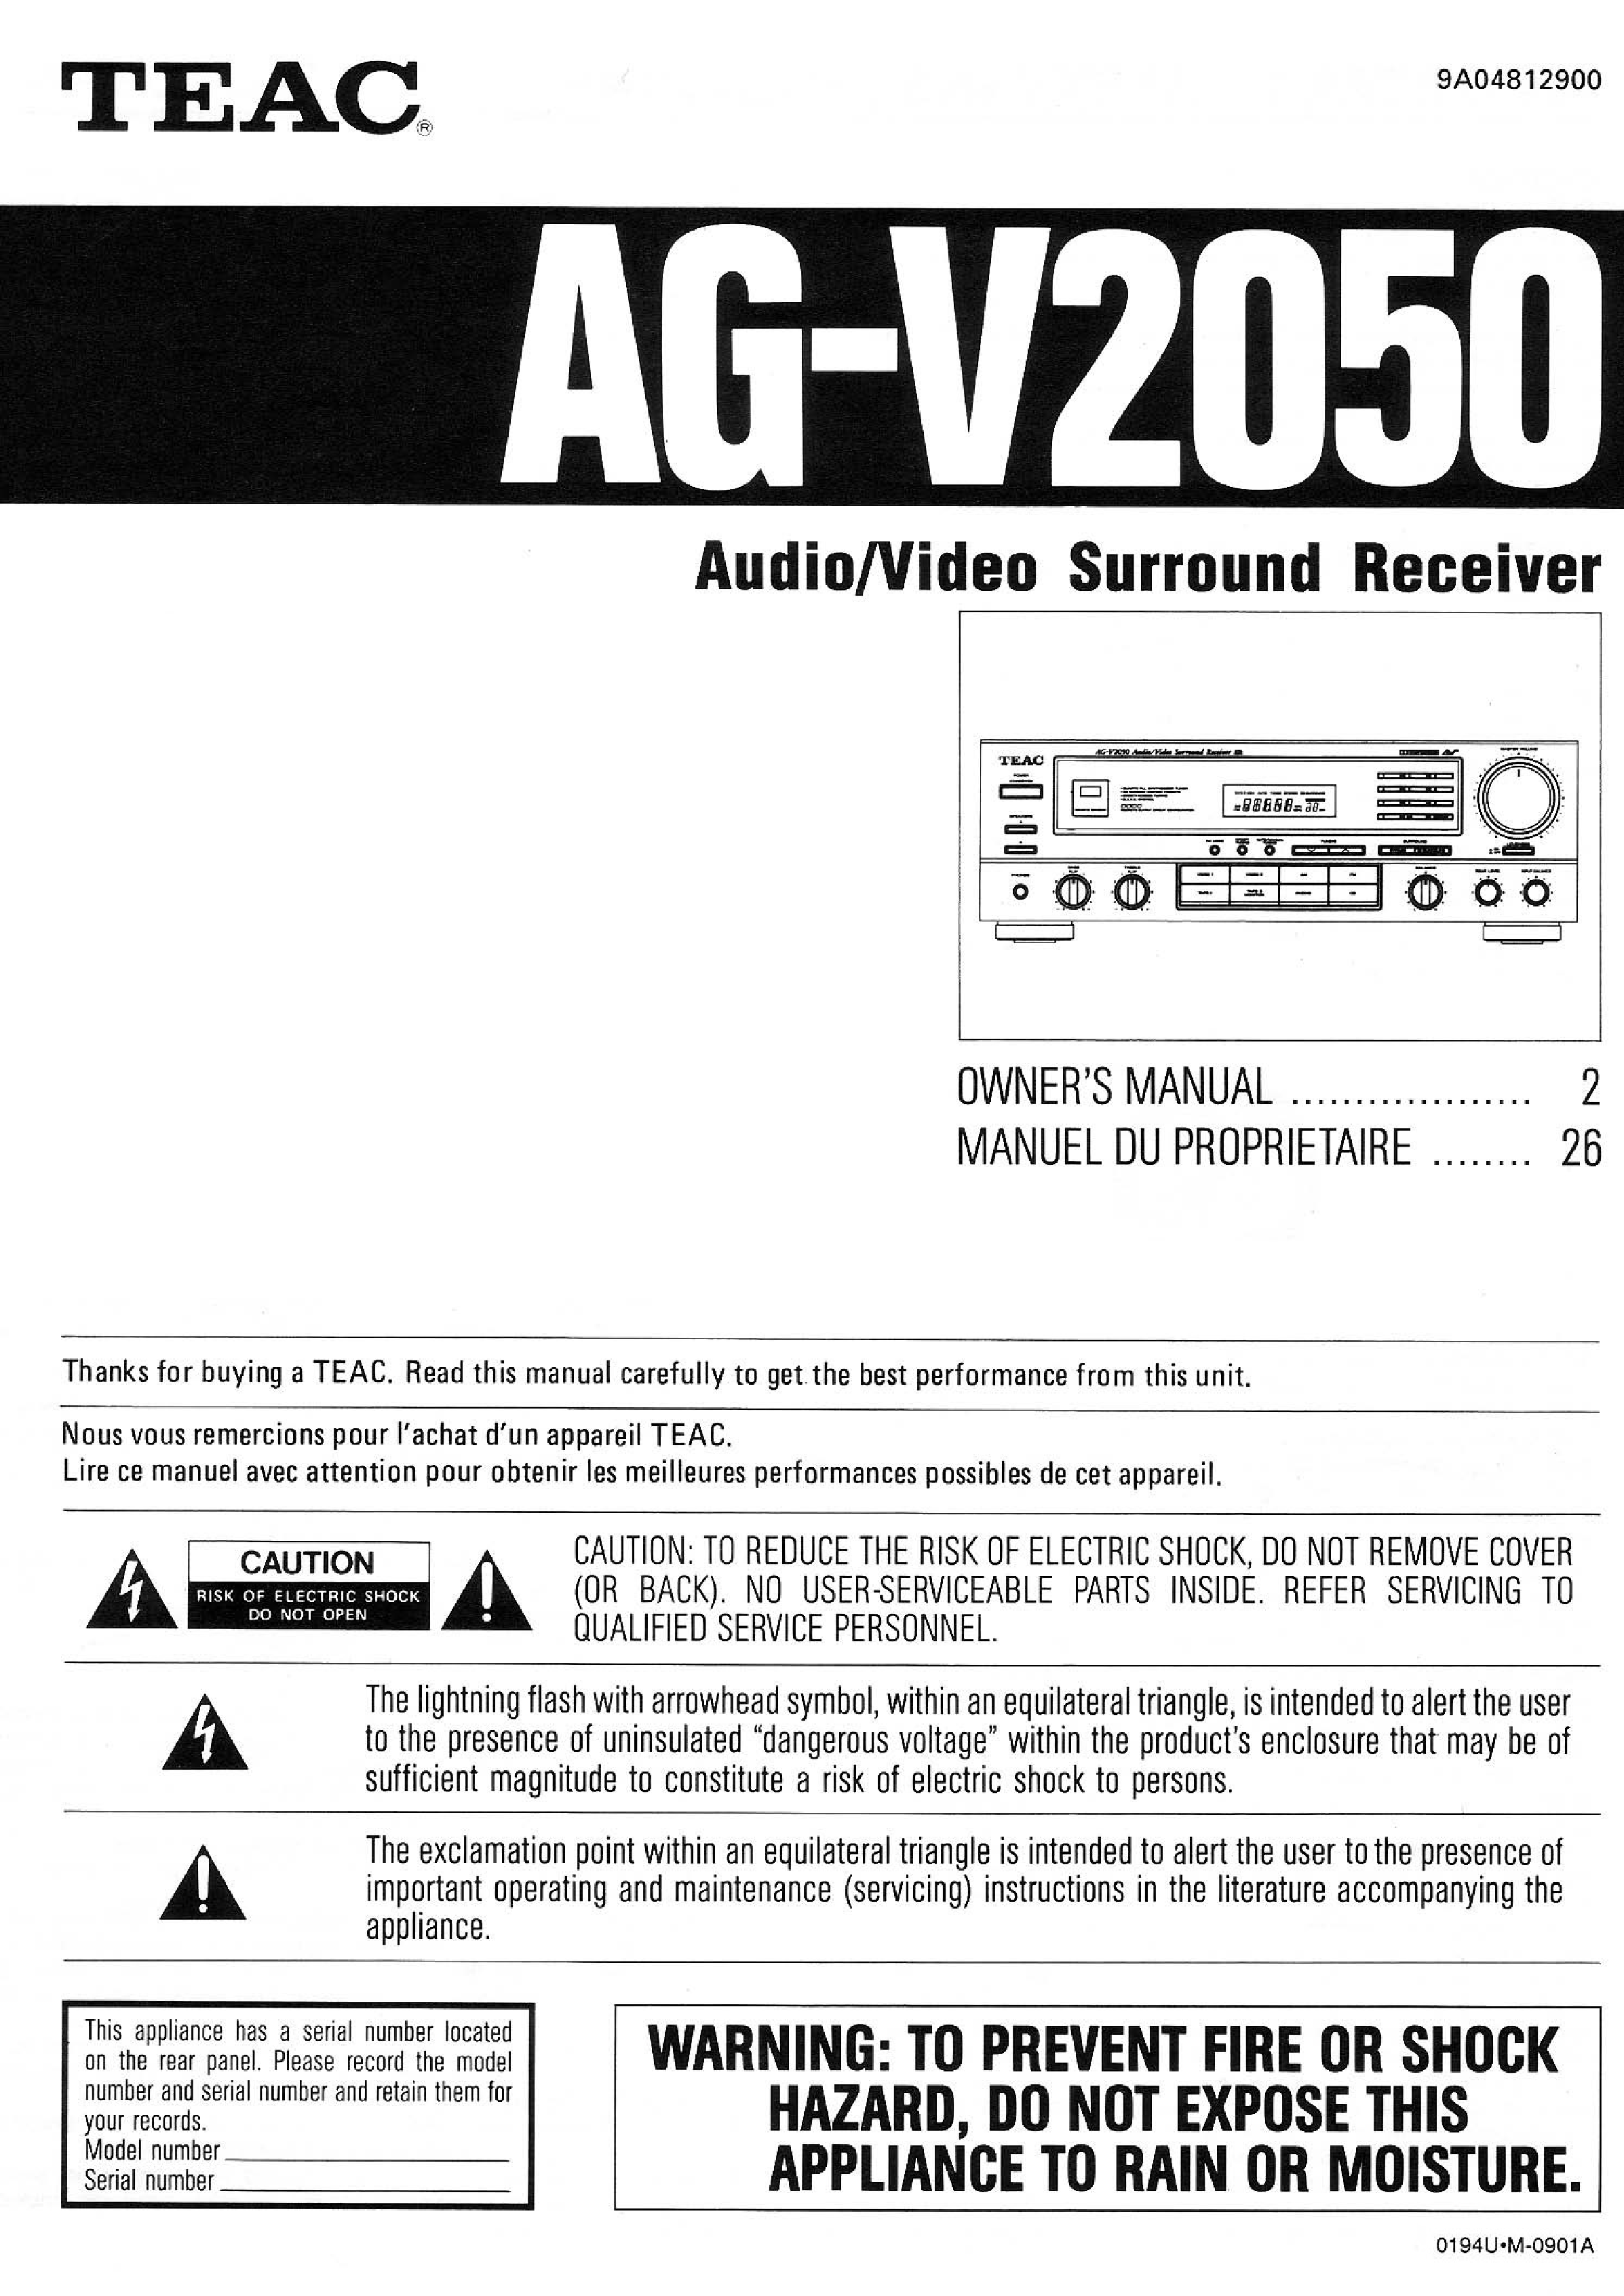 Owner's Manual for TEAC AGV2050 - Download